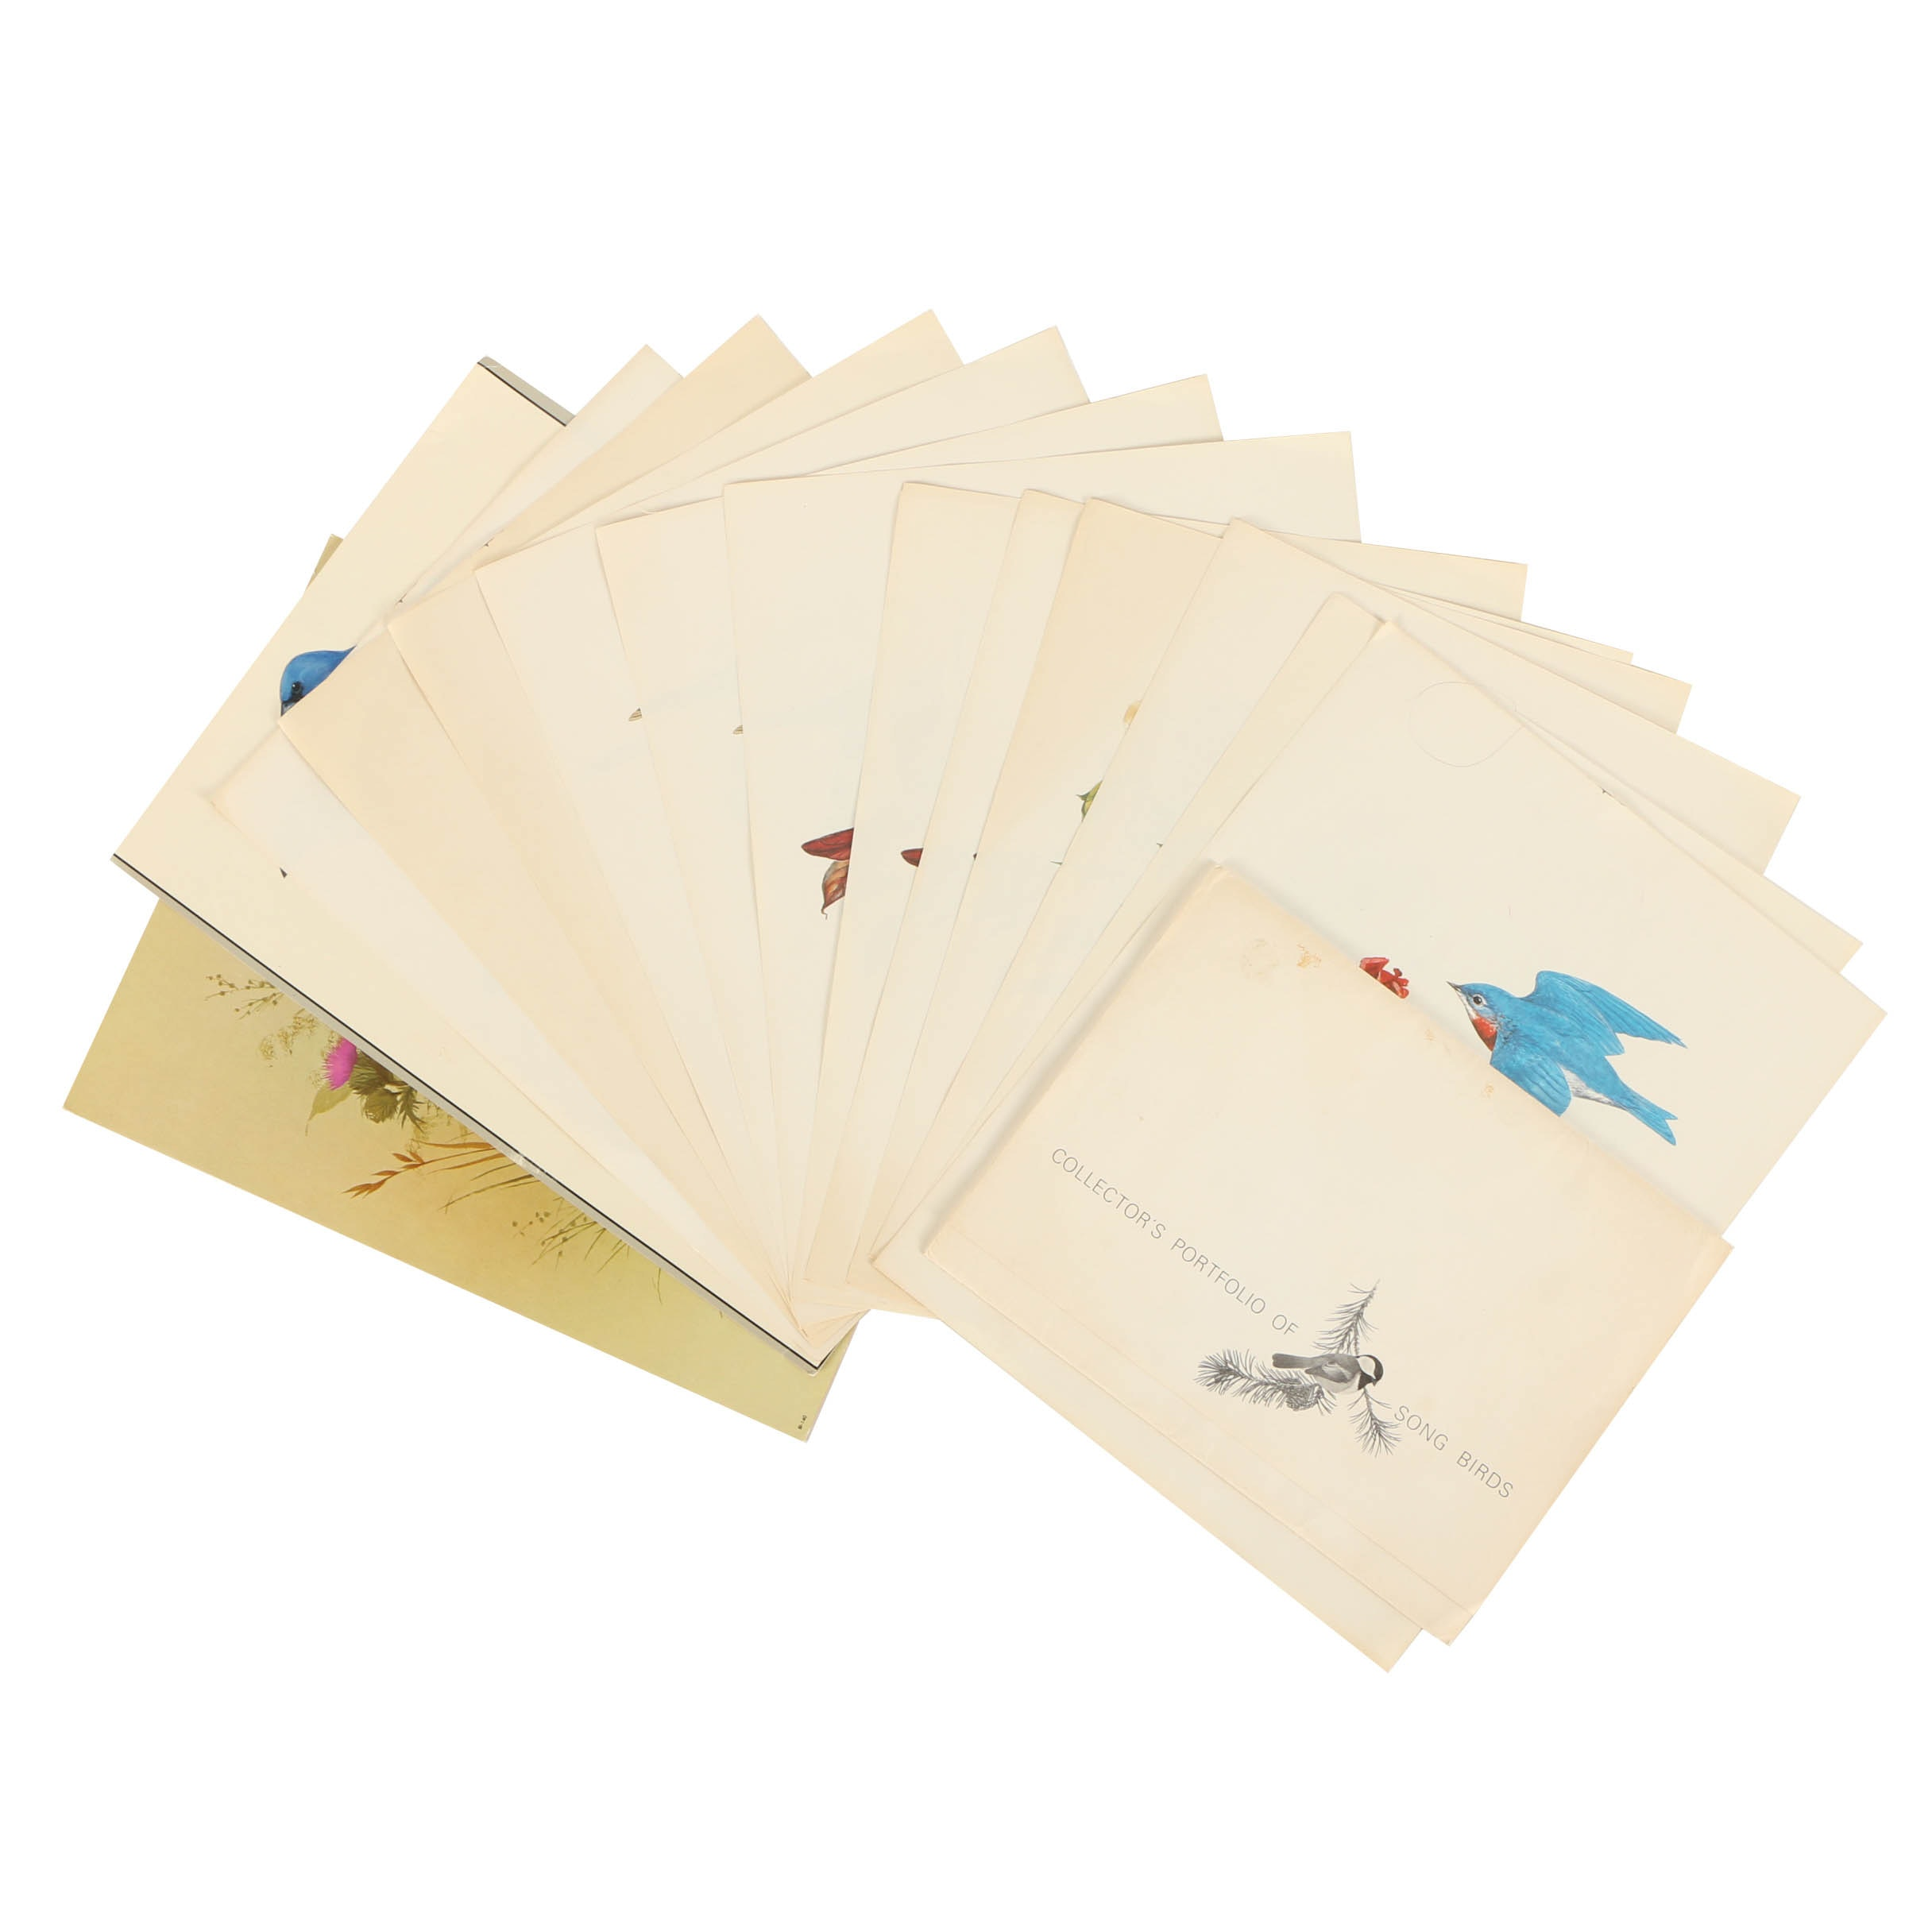 Offset Lithographs After Ornithological Illustrations